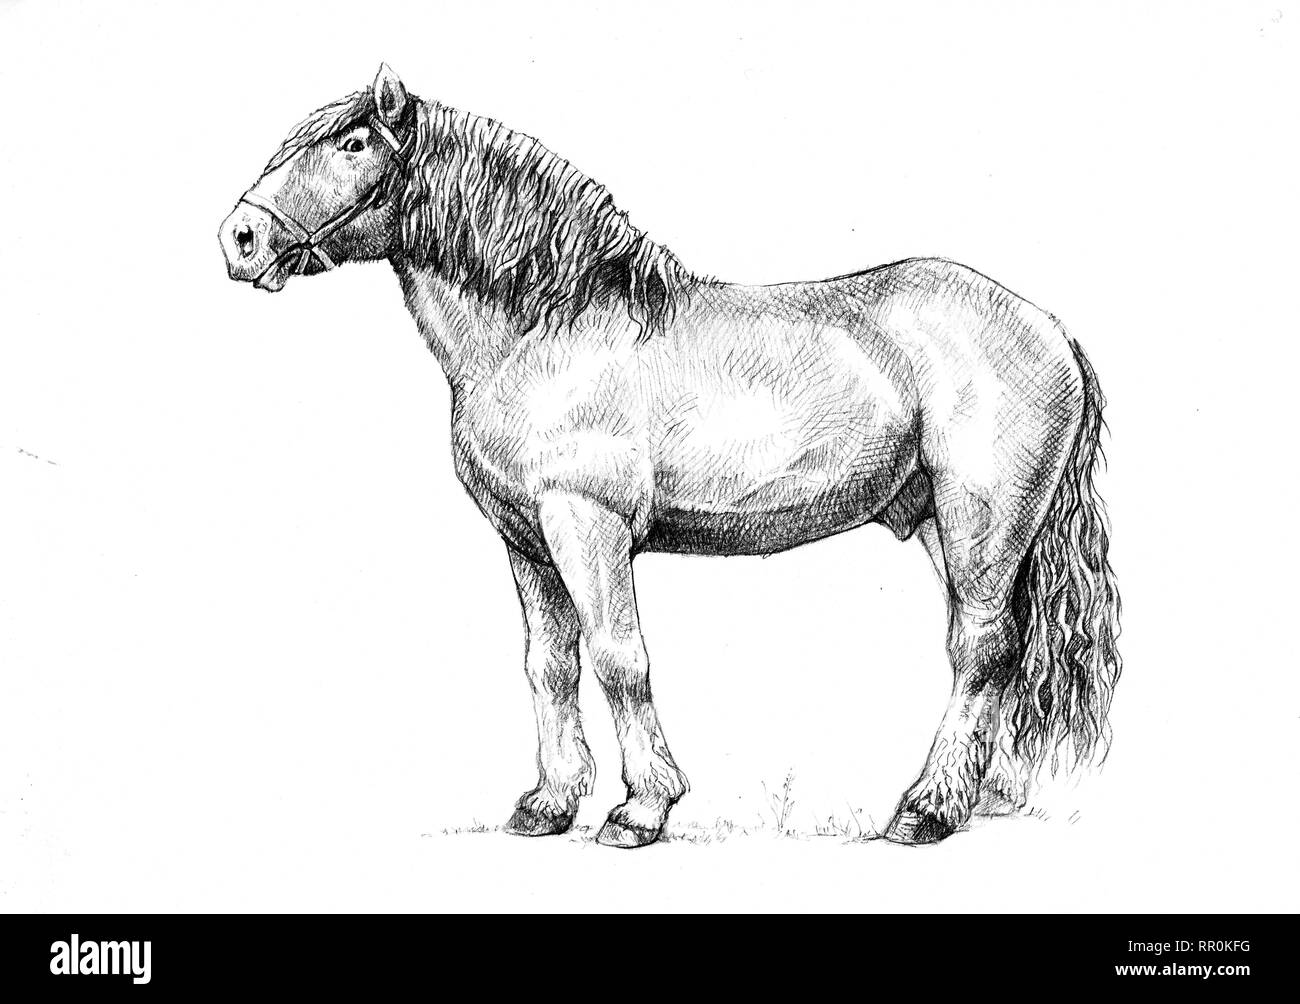 Draft Horse Illustration Horse Portrait Horse Pencil Drawing Stock Photo Alamy